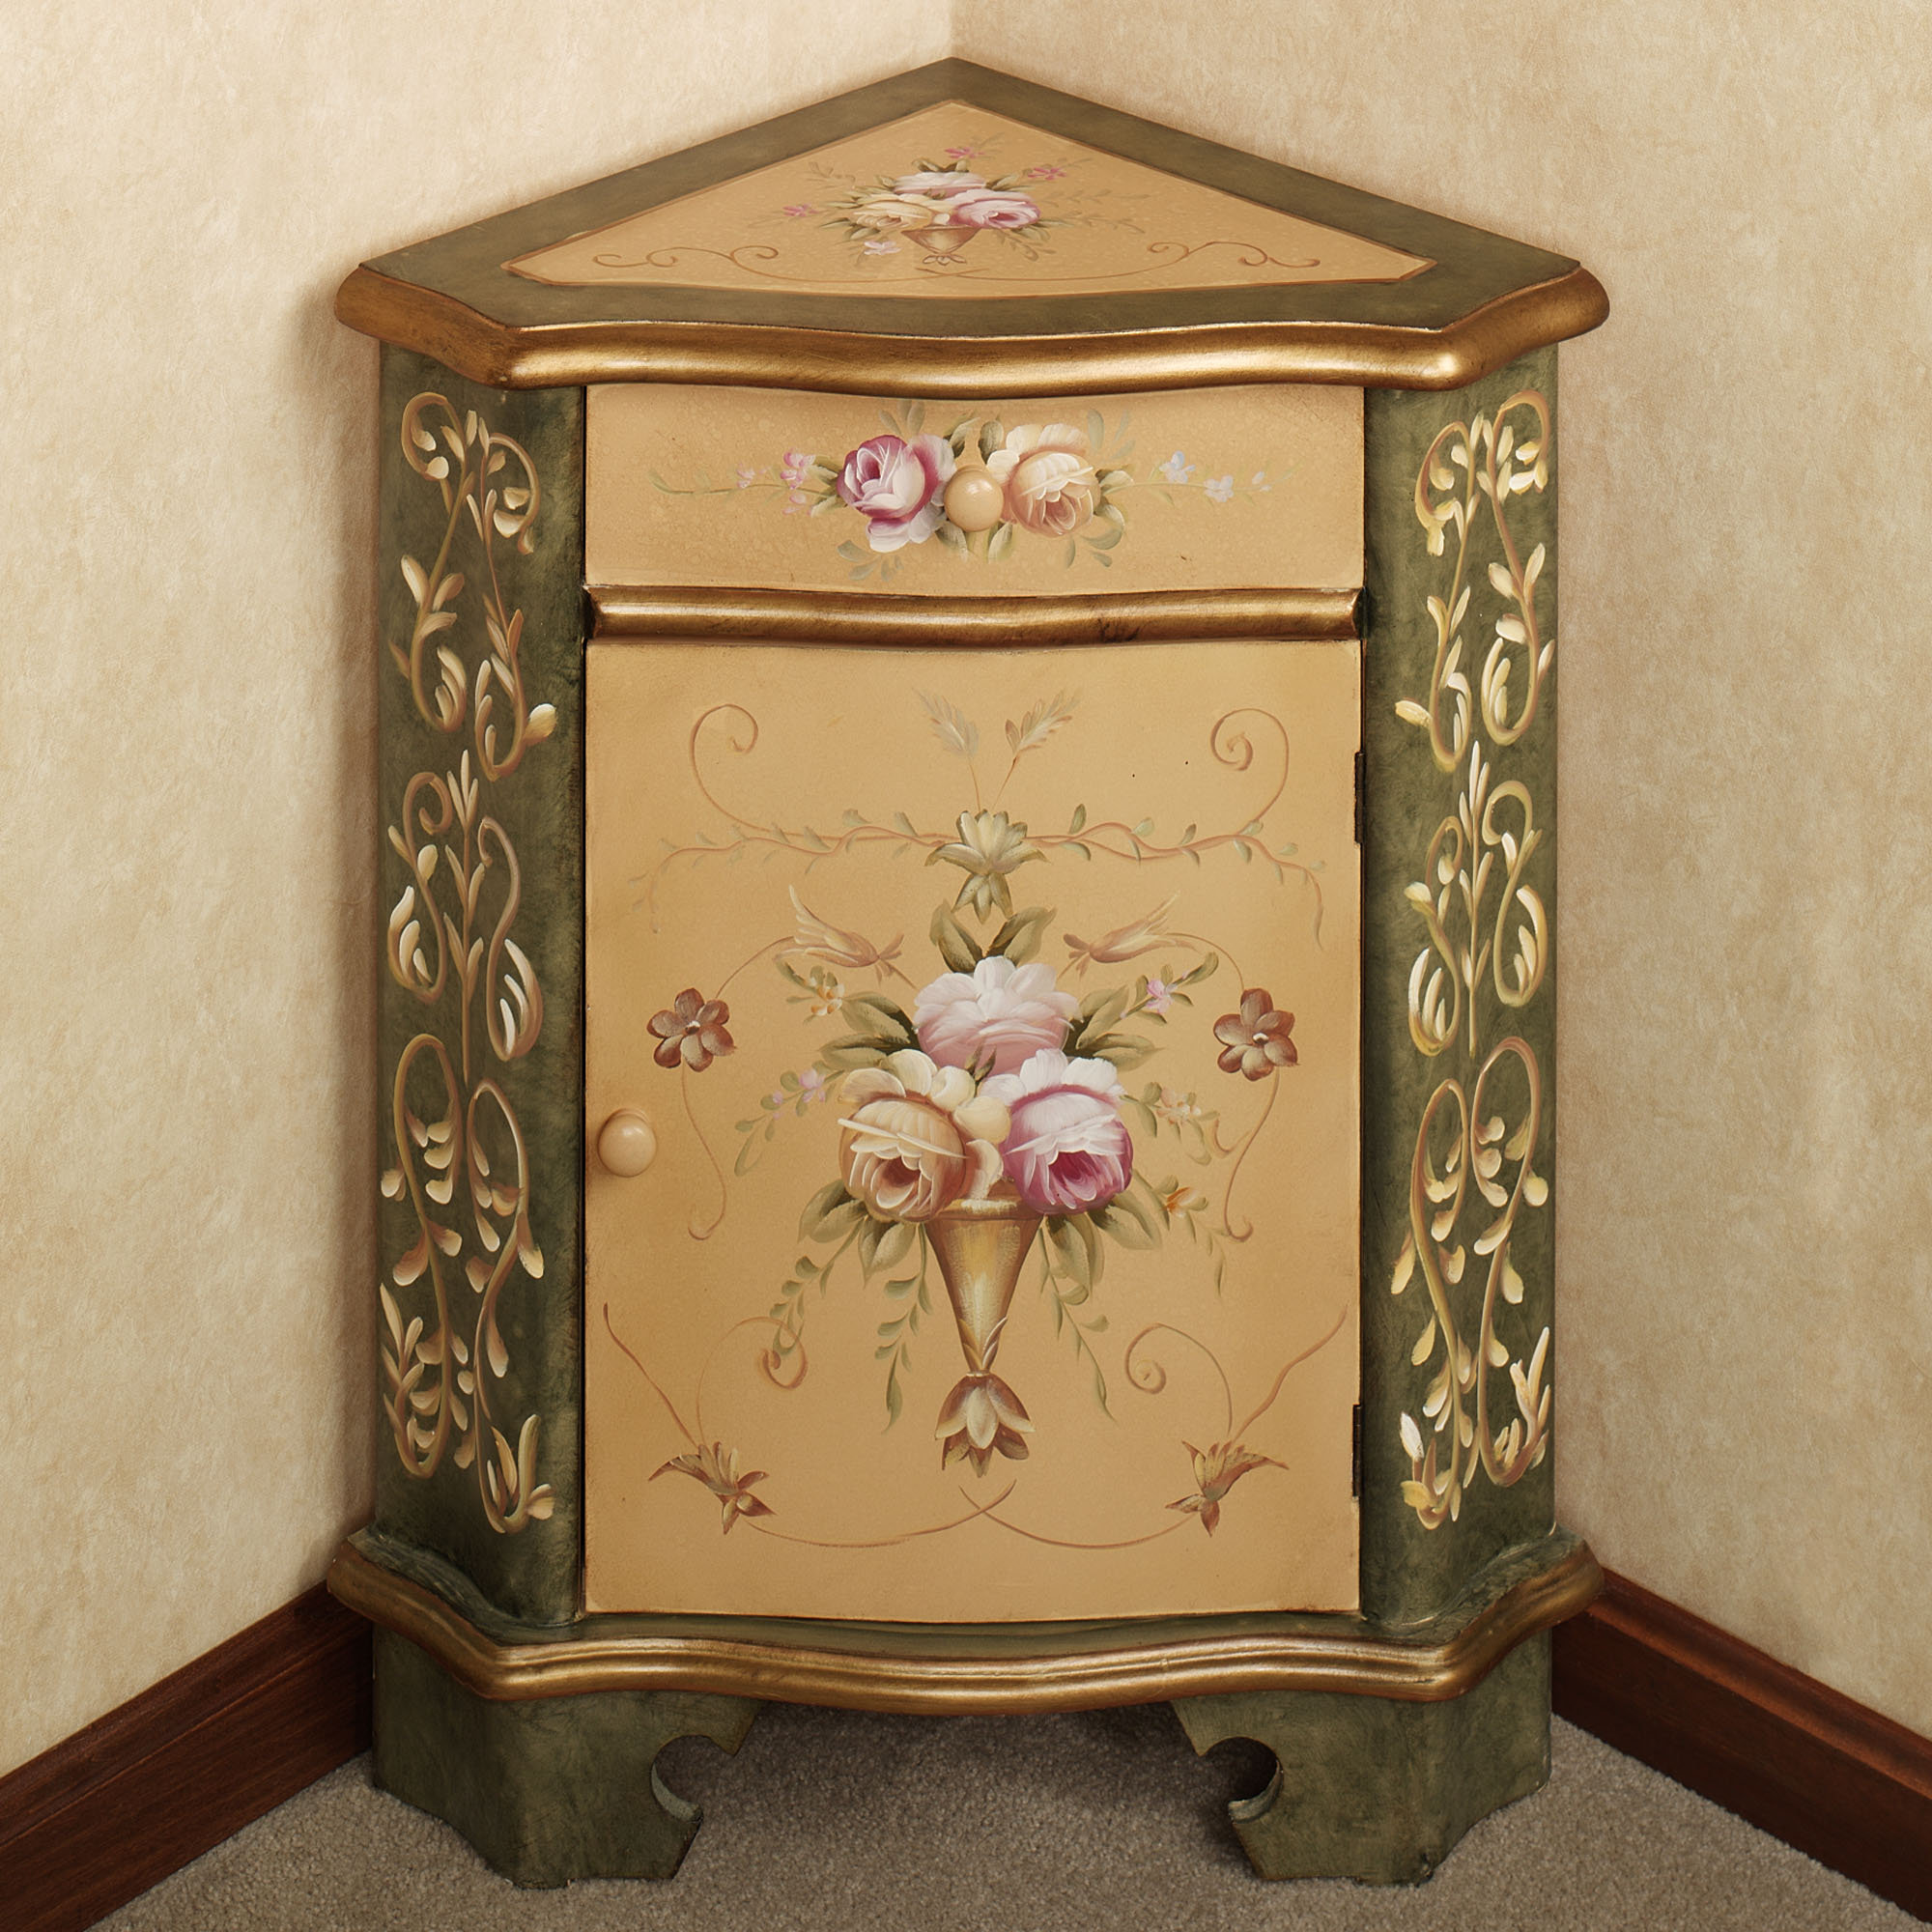 luxury corner accent table for dining room zandeah rose floral furniture cabinet design awesome using drawer and not small sheldon robinson has subscribed credited from white